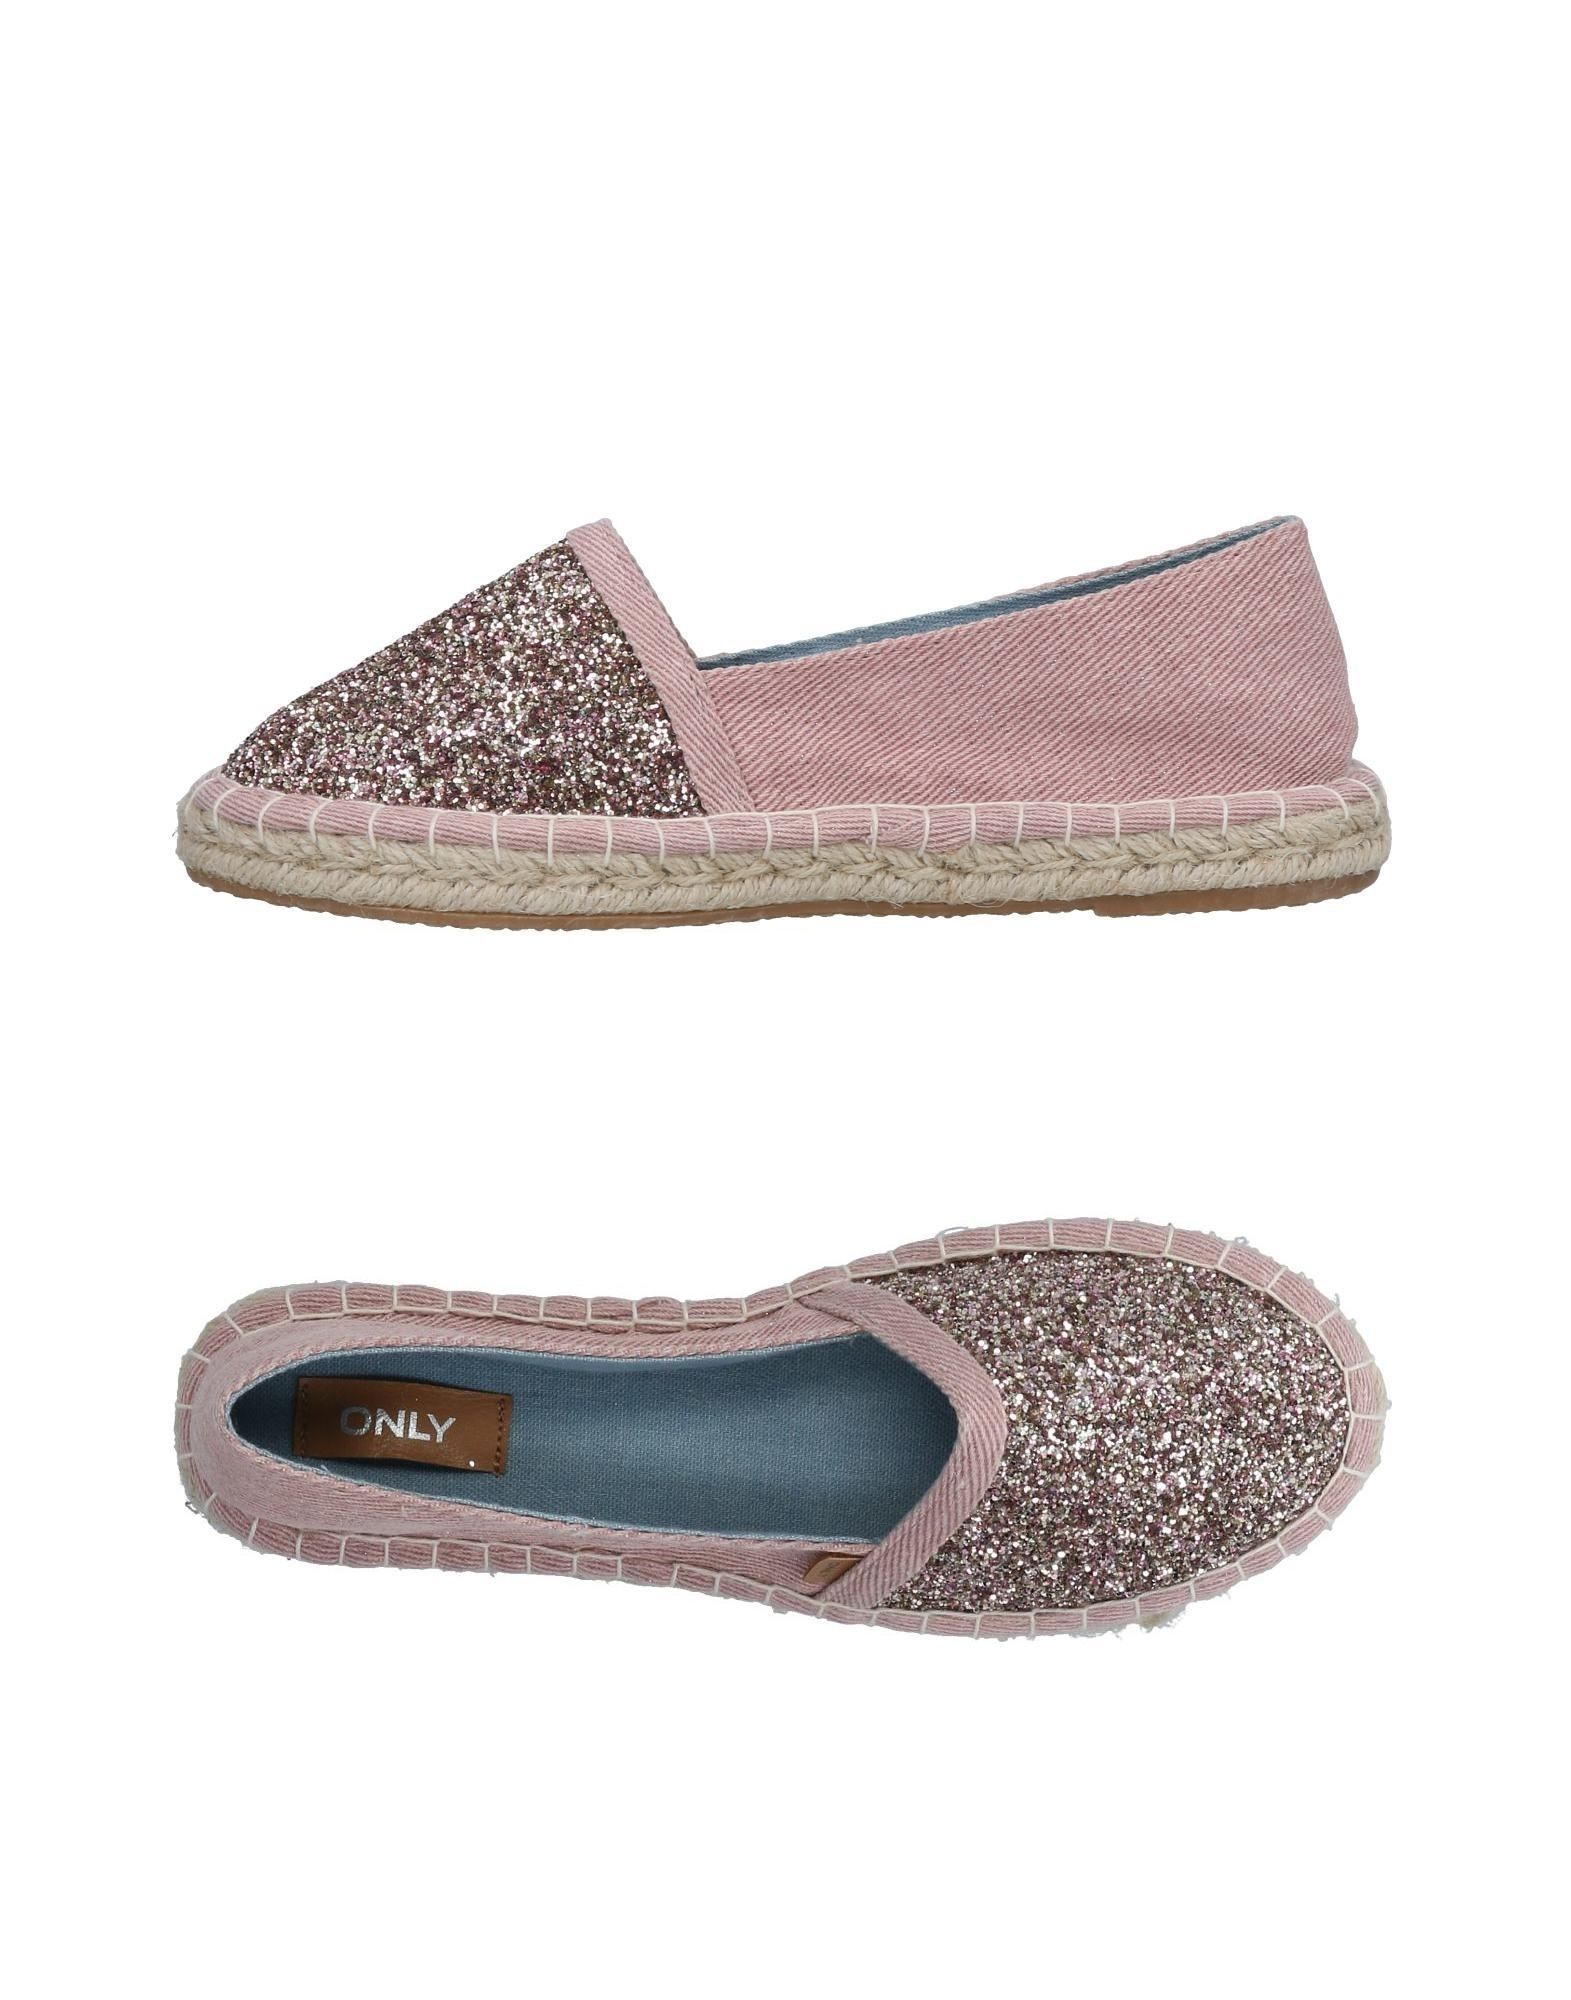 FOOTWEAR Only Pink Woman Textile fibres